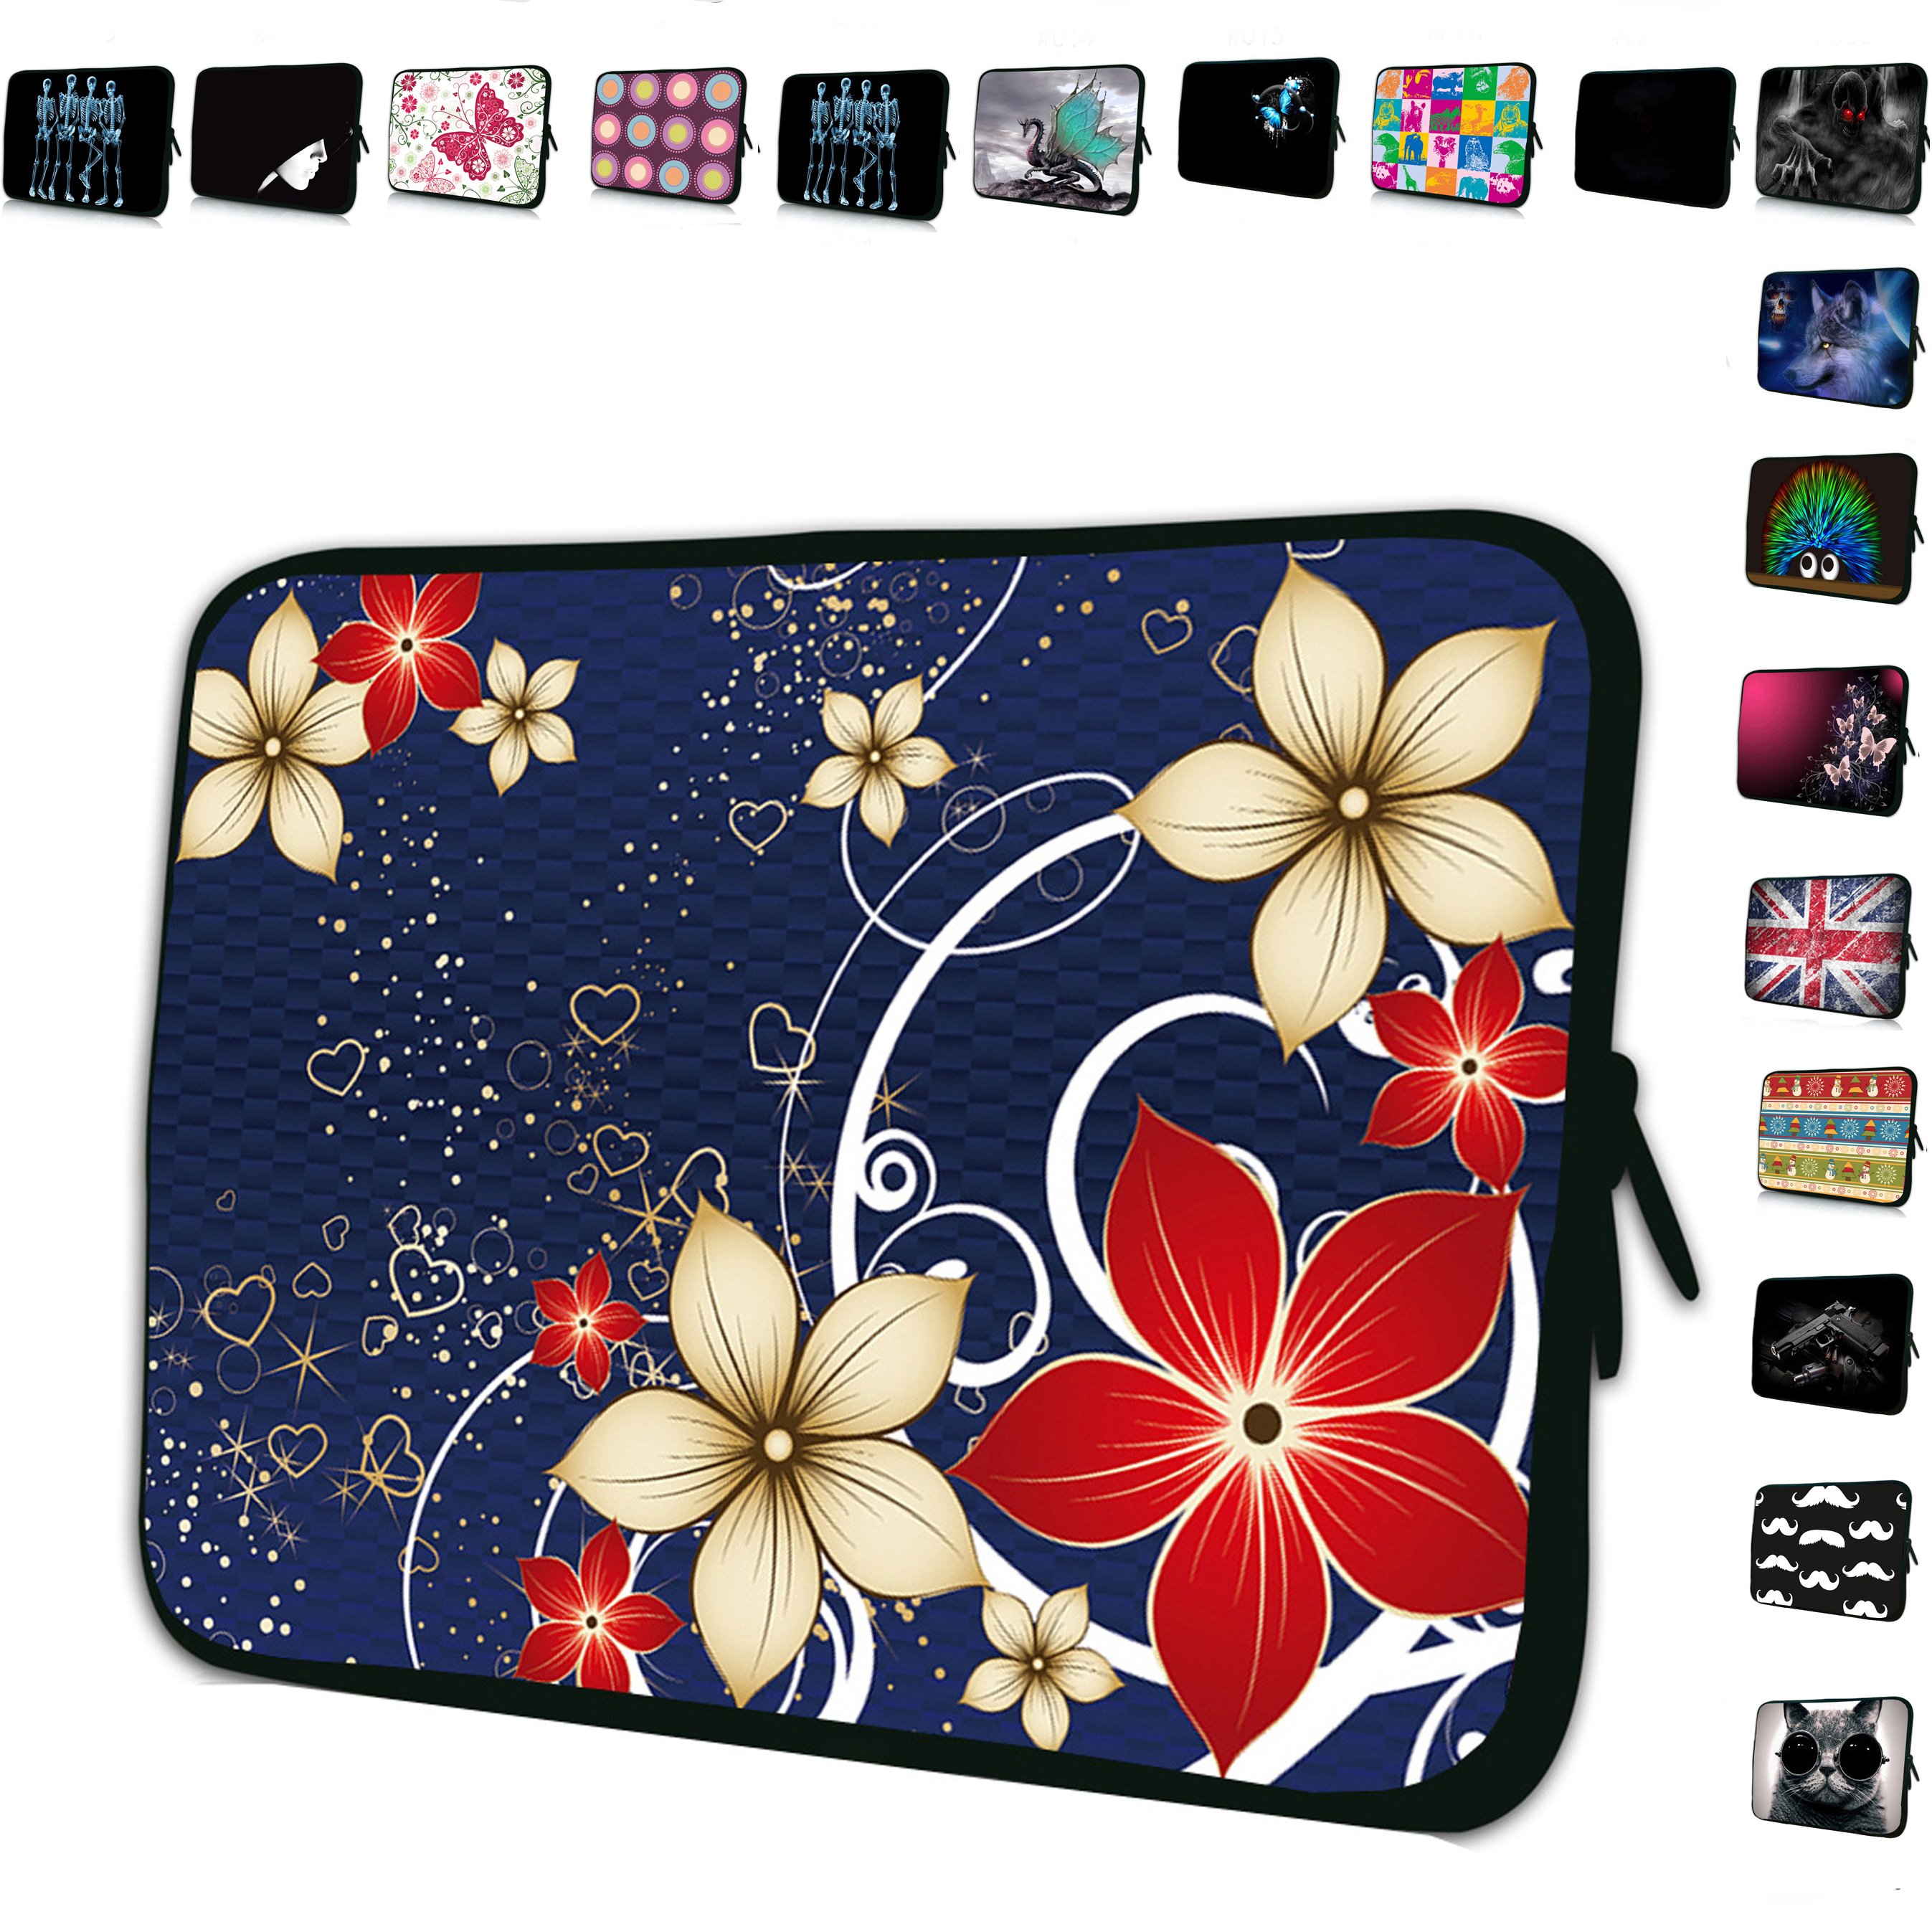 Viviration Portable Tablet 10 10.1 Sleeve Bag Zipper Neoprene Cover Pouch For samsung galaxy tab s2 Ipad Air 5 4 4th 3 3rd 2 9.7 high quality 10 25 4cm colorful hard netbook laptop sleeve case bag for ipad 2 3 4 5 6 sleeve bag